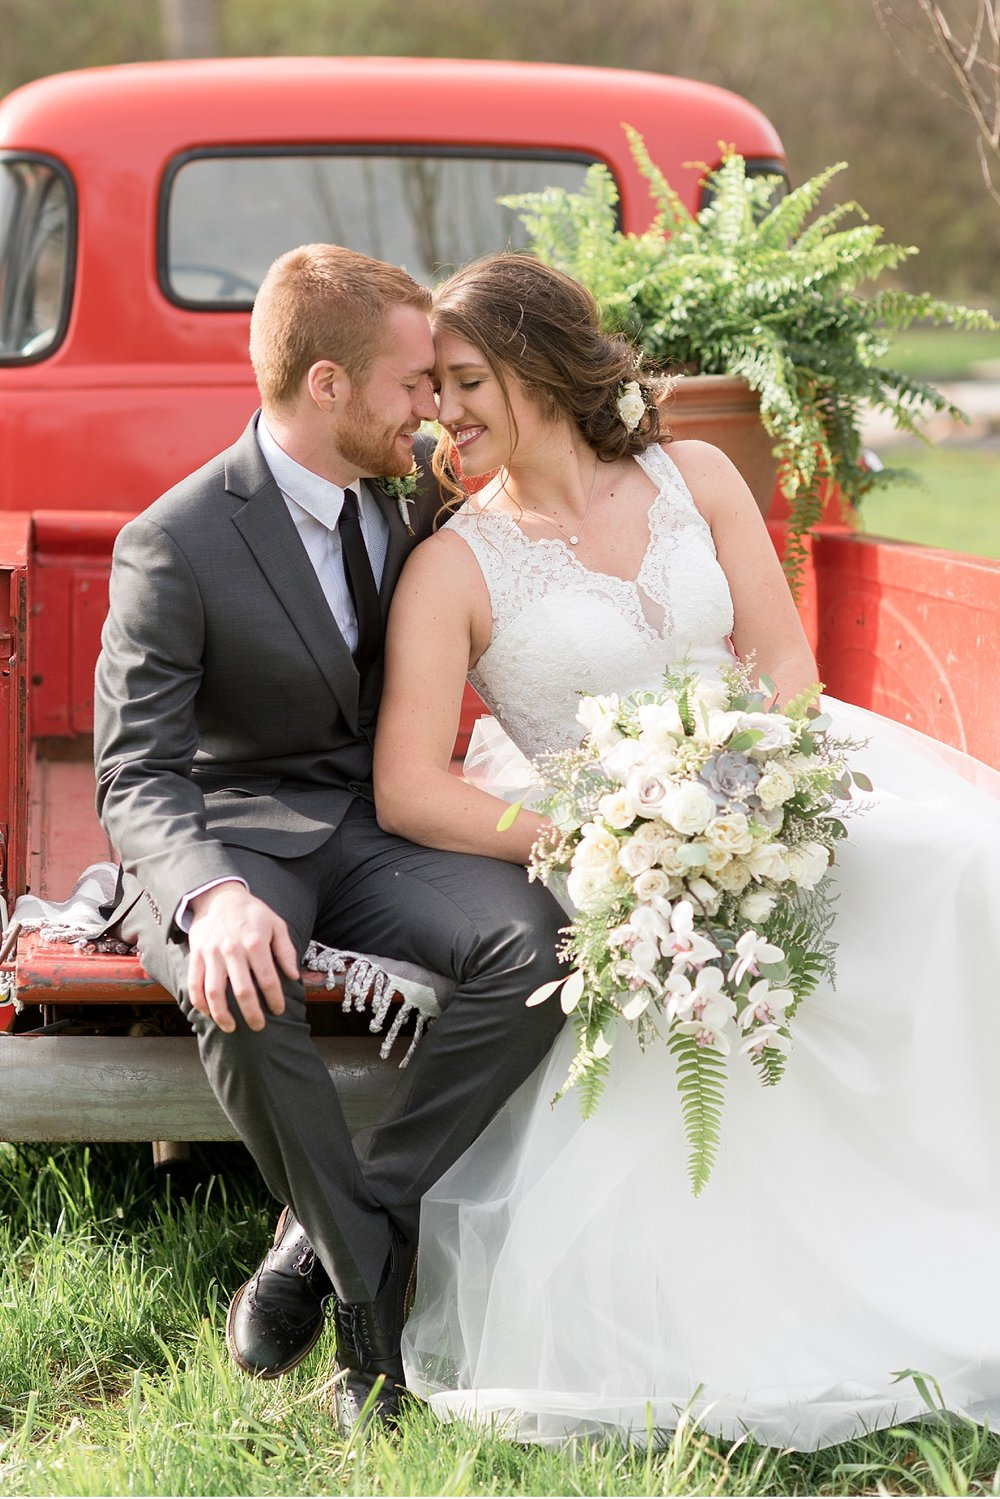 Beautiful Lancaster County Farmland wedding at sunset photography photo_1162.jpg